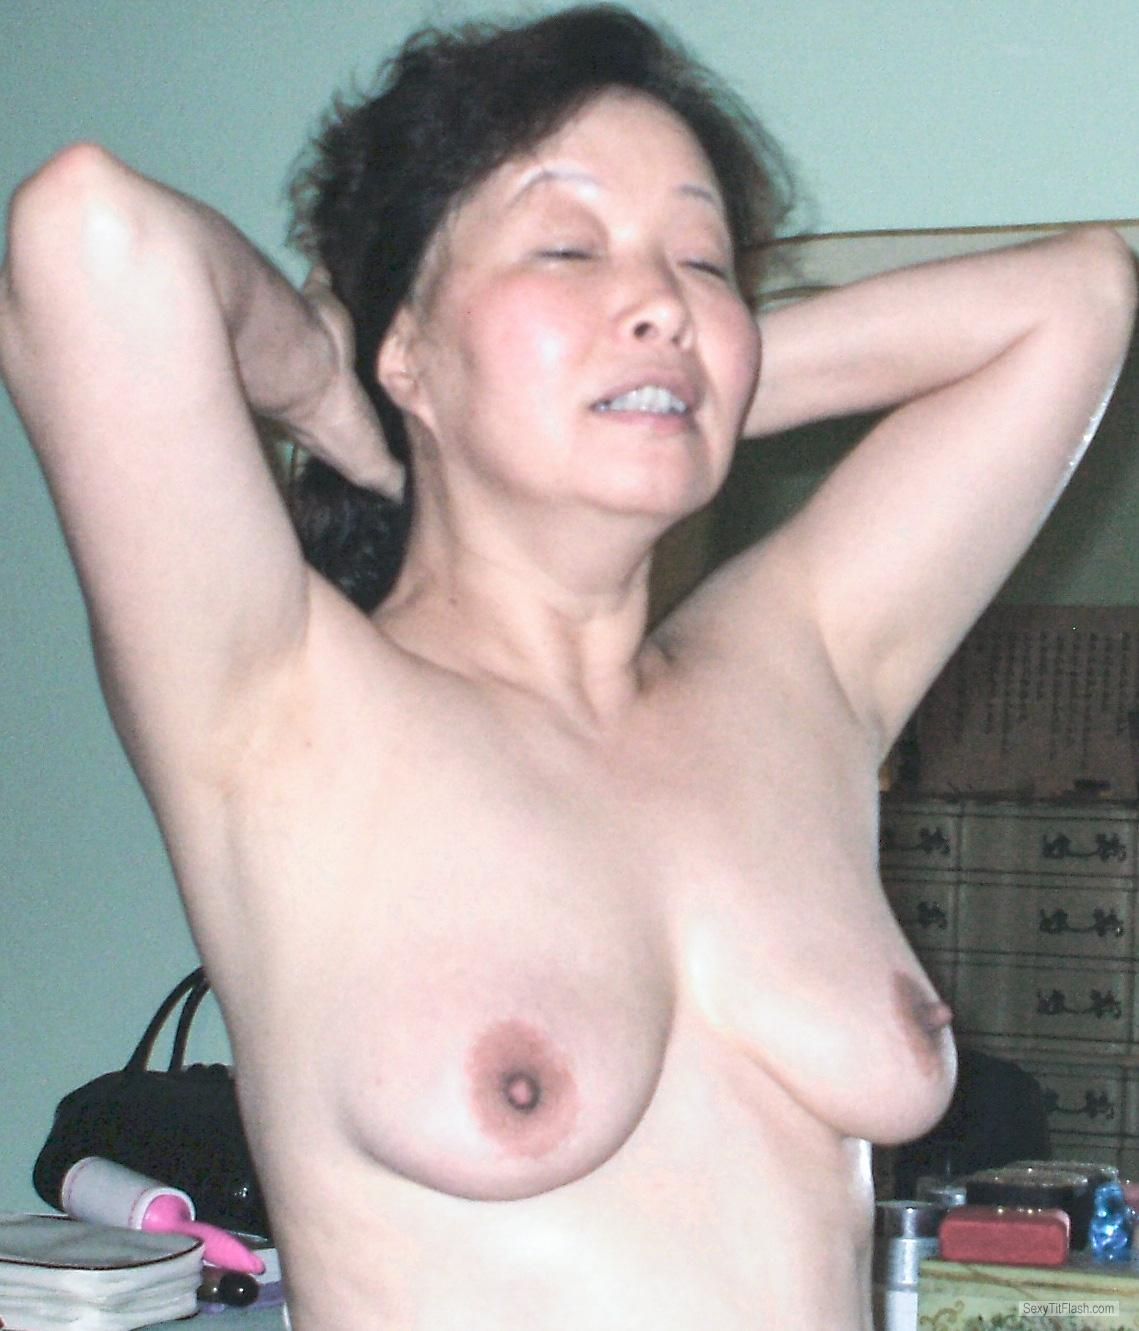 Tit Flash: Wife's Medium Tits - Topless Sook from United States